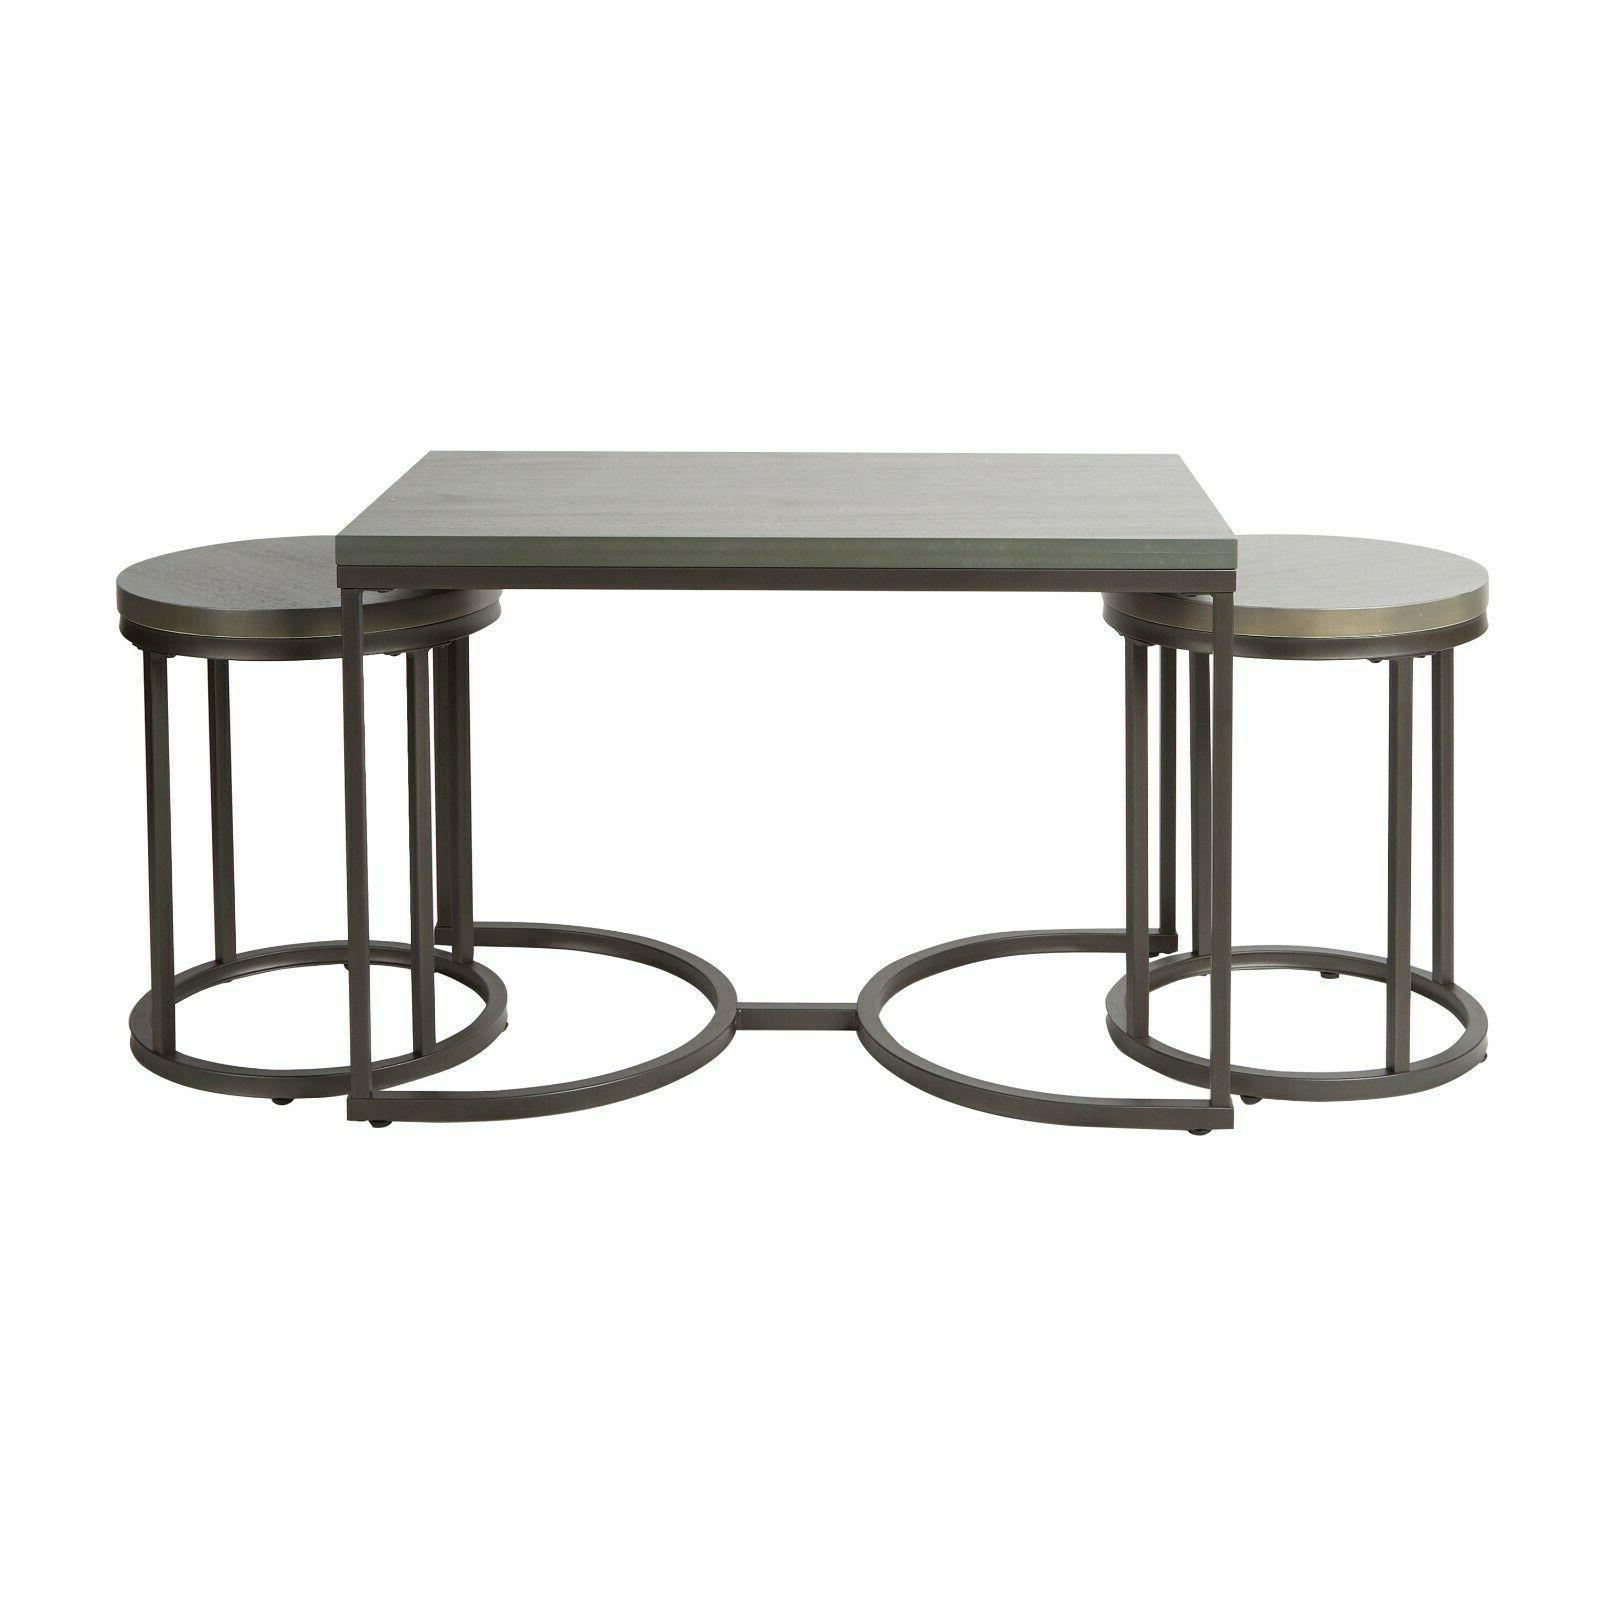 3 coffee table set table table Tables modern